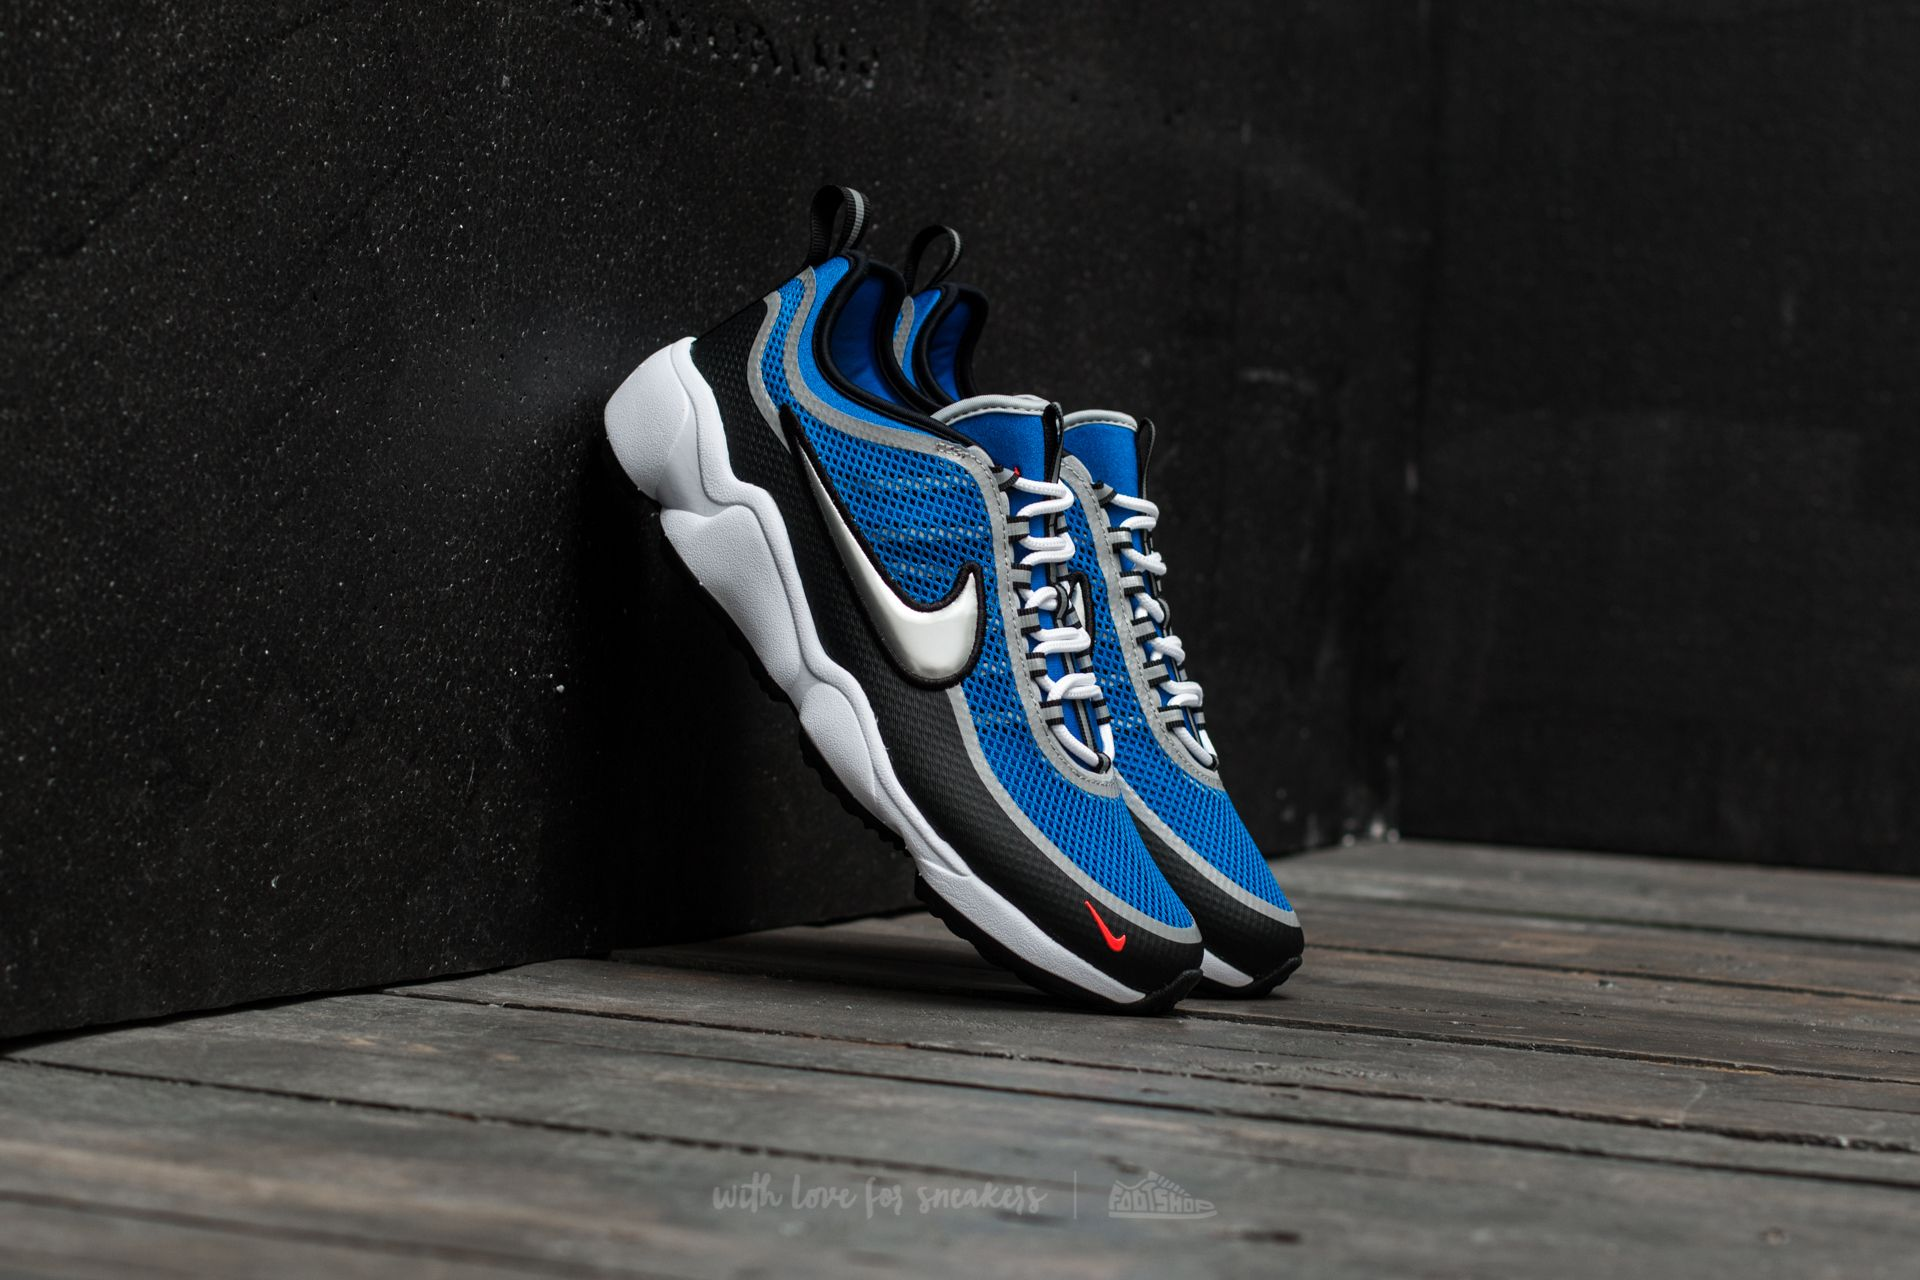 Nike Zoom Spiridon Regal Blue/ Metallic Silver - 16697